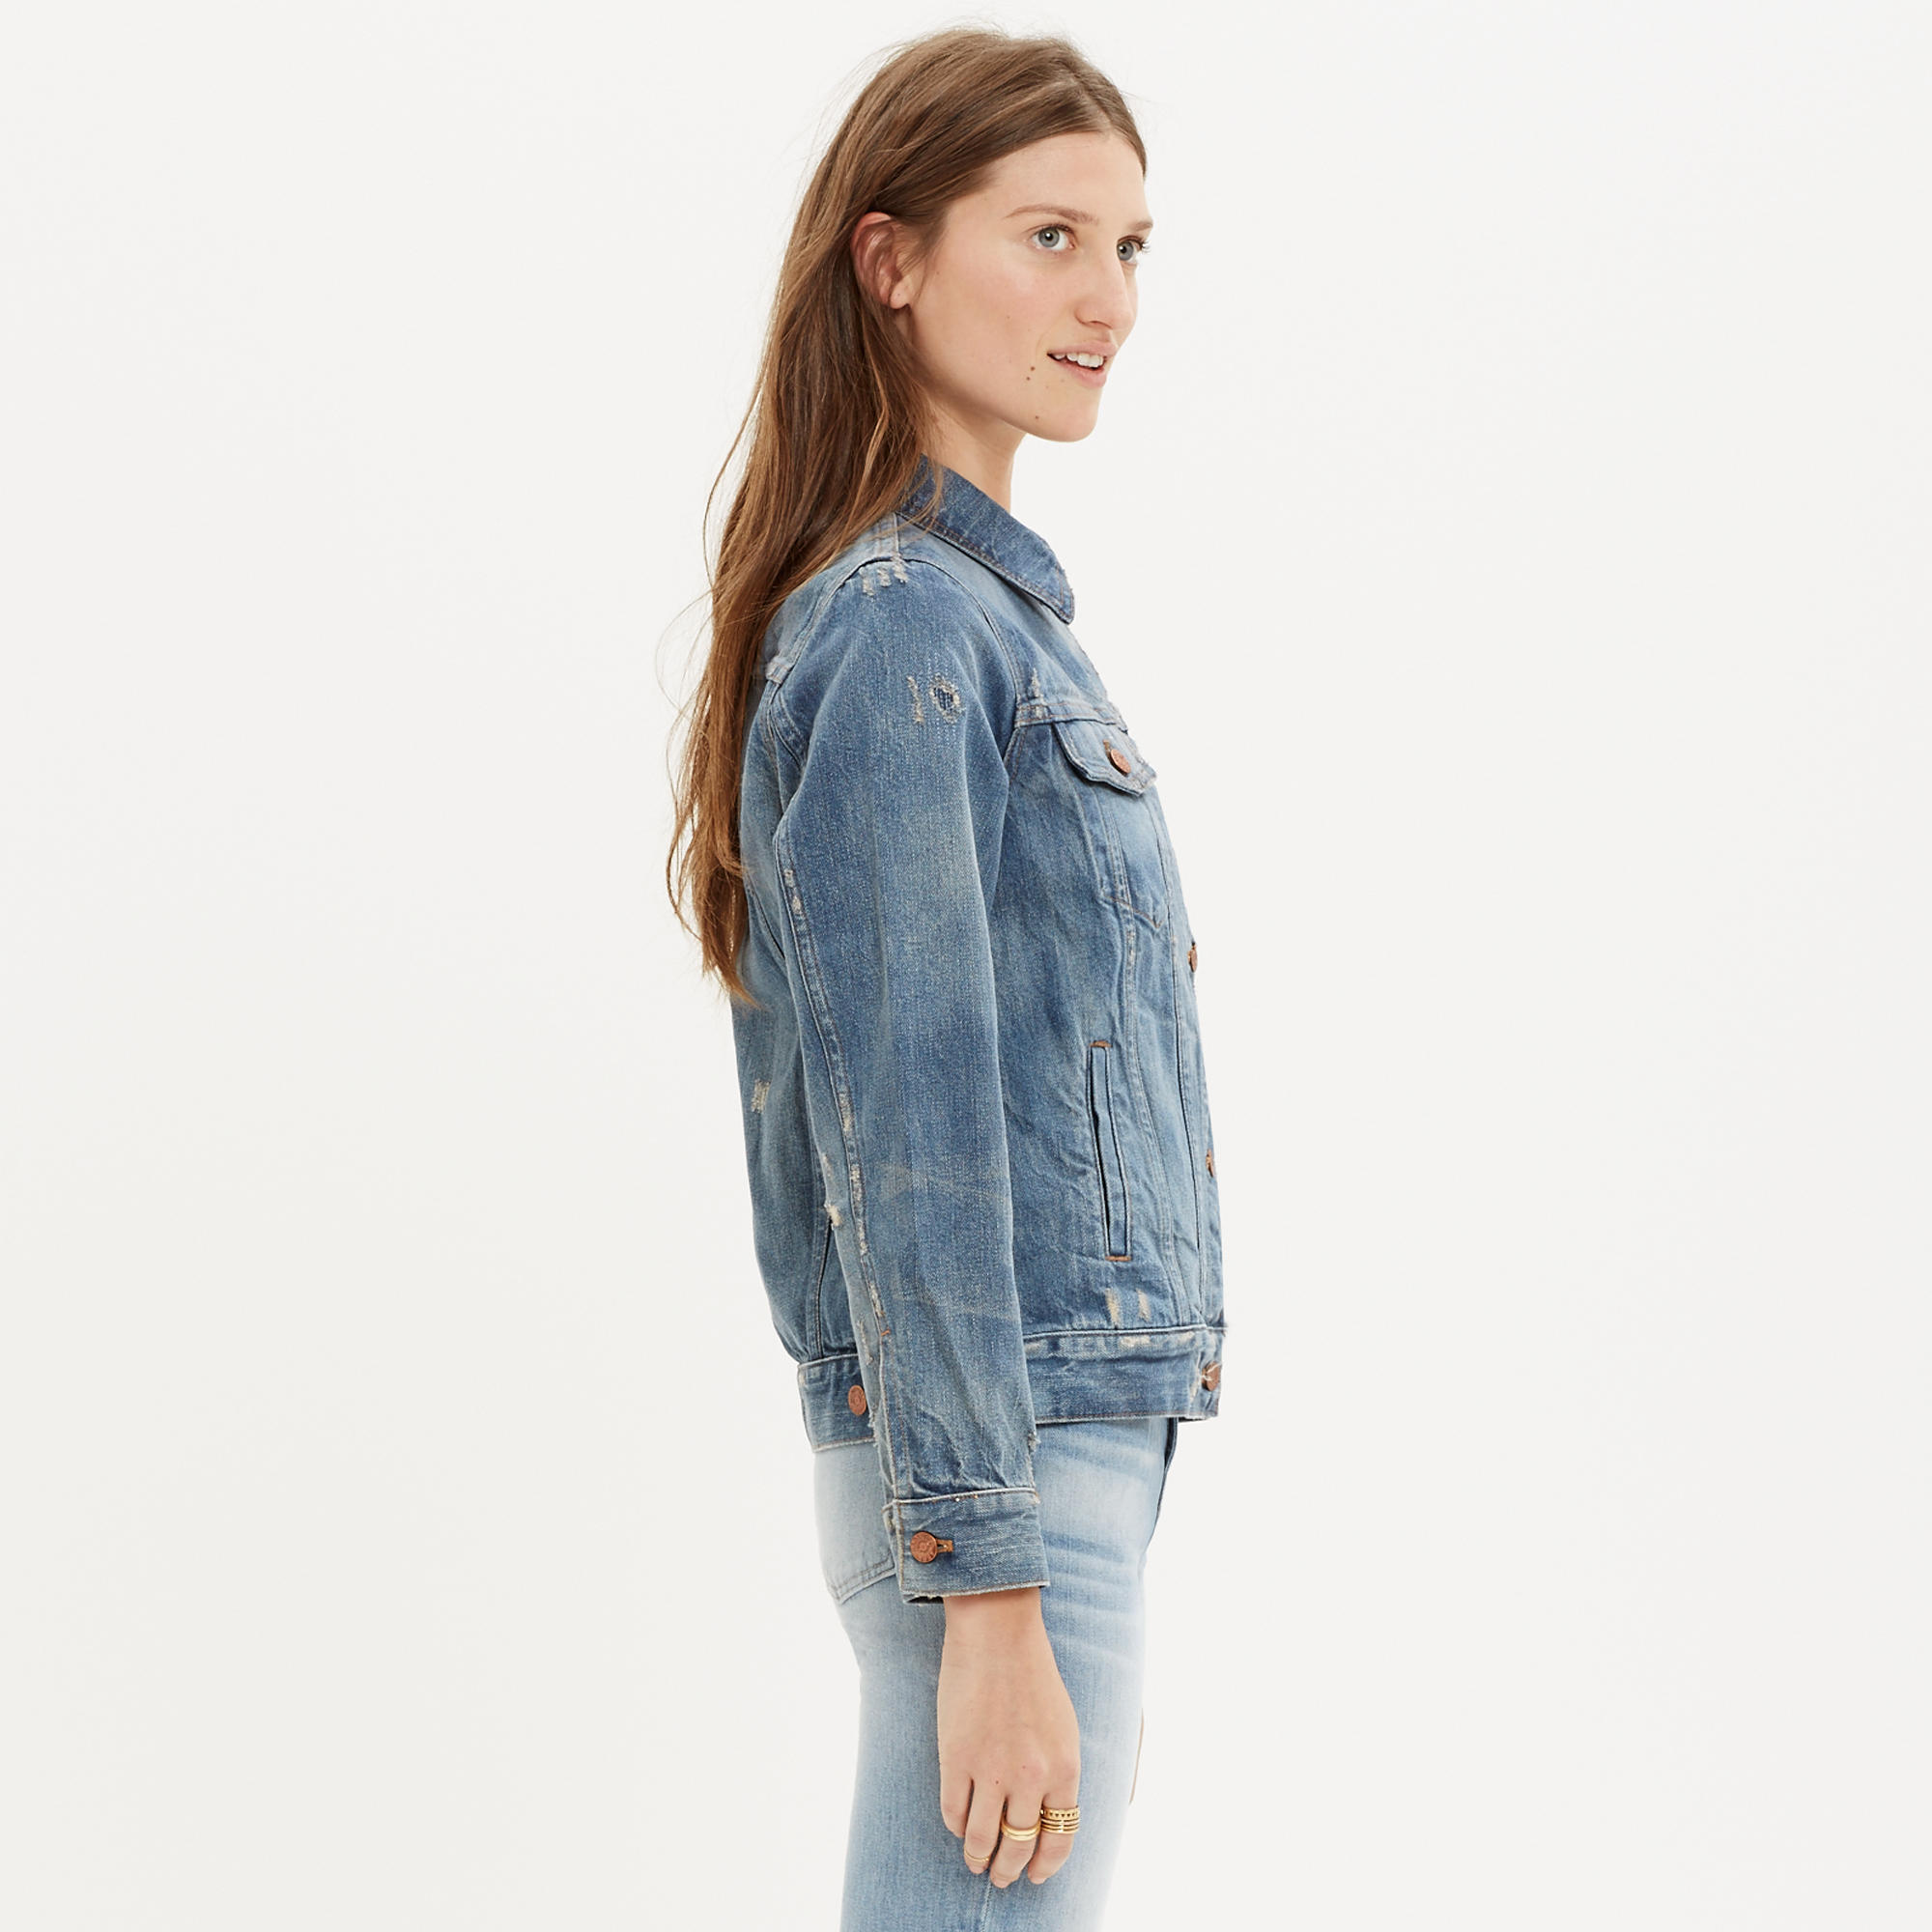 The Jean Jacket in Ellery Wash : more denim dressing | Madewell